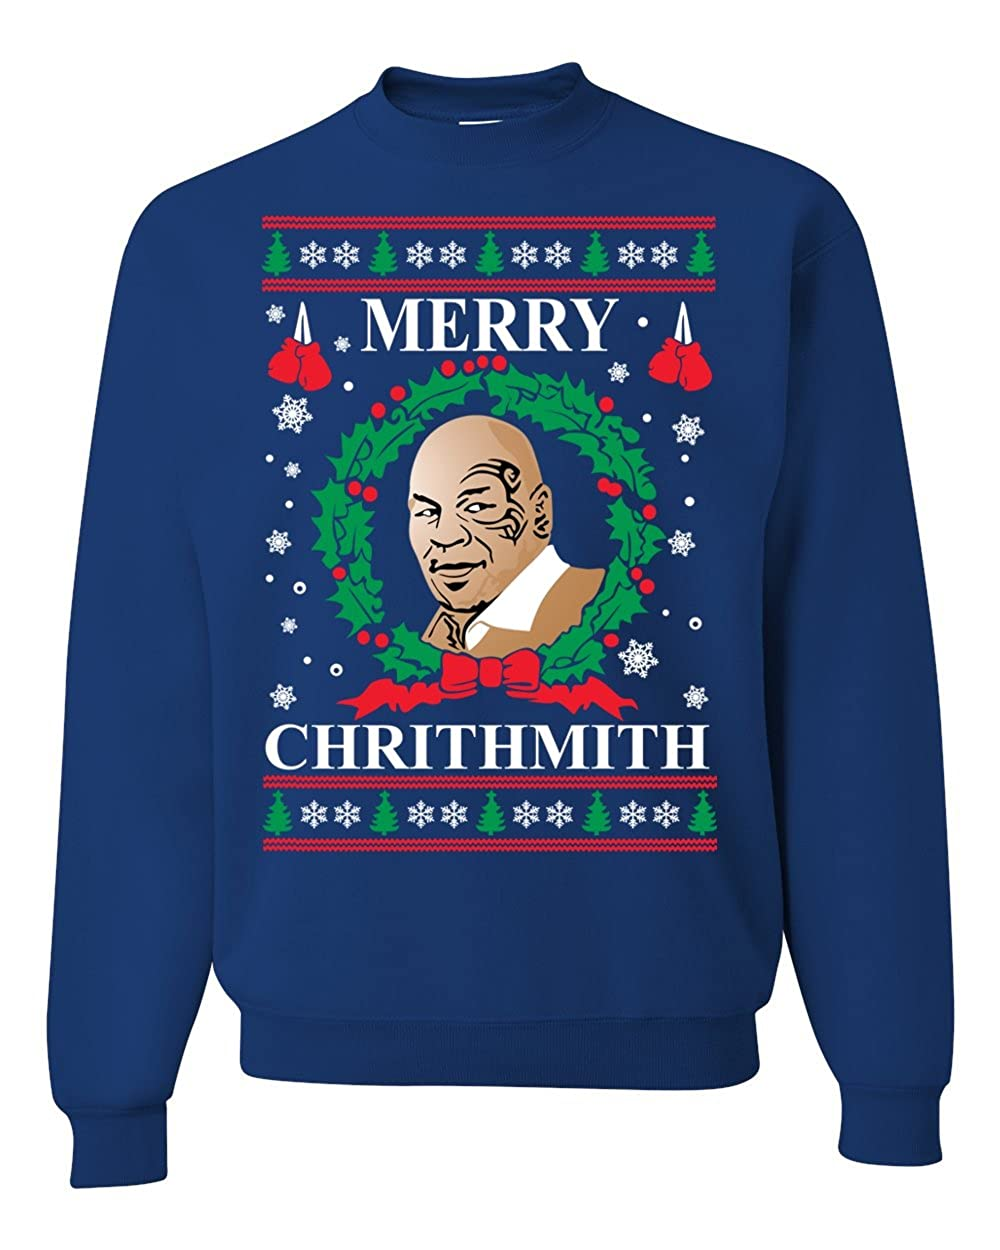 Merry Chrithmith Mike Tyson Ugly Christmas Sweater Unisex Crewneck Sweatshirt